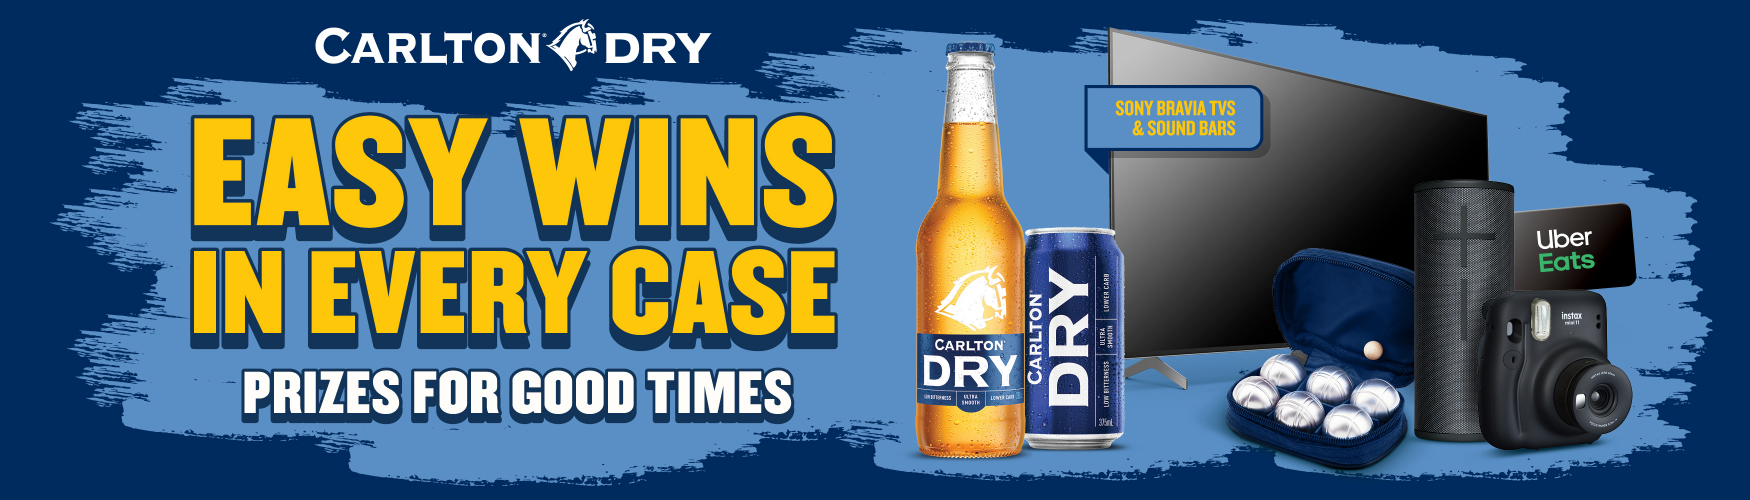 Carlton Dry - House of Dry Promotion